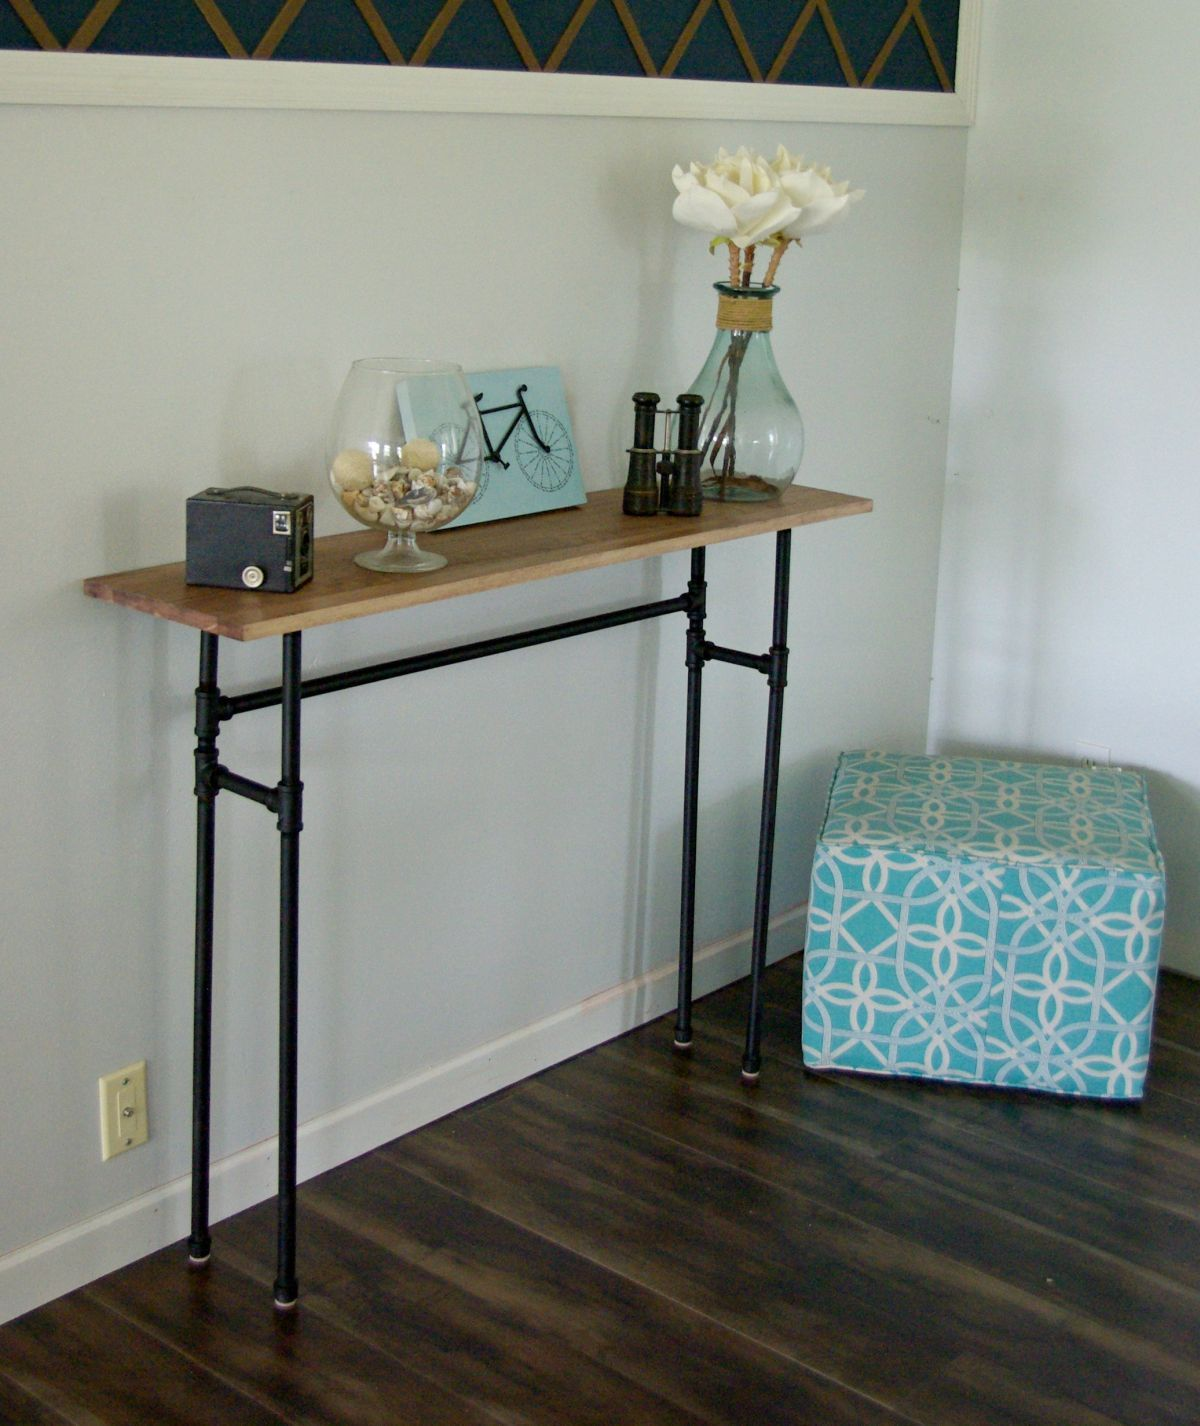 How to build a rustic table using galvanized pipes rustic table diy simple console table from pipes geotapseo Image collections